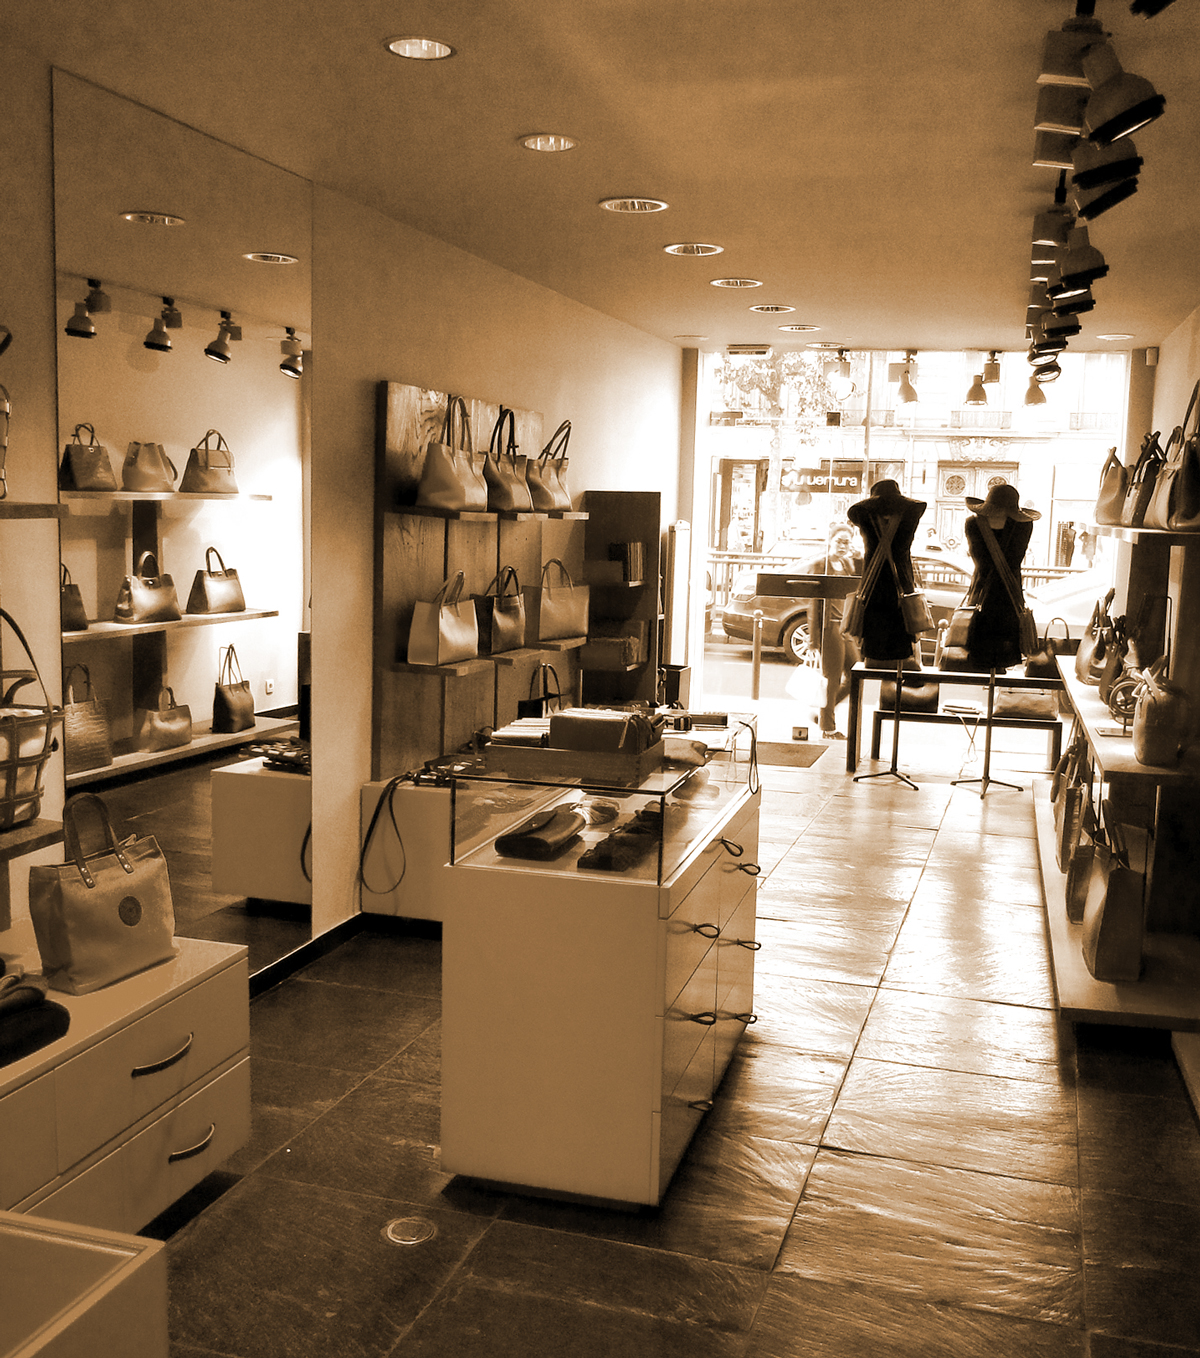 Existing condition of the retail store